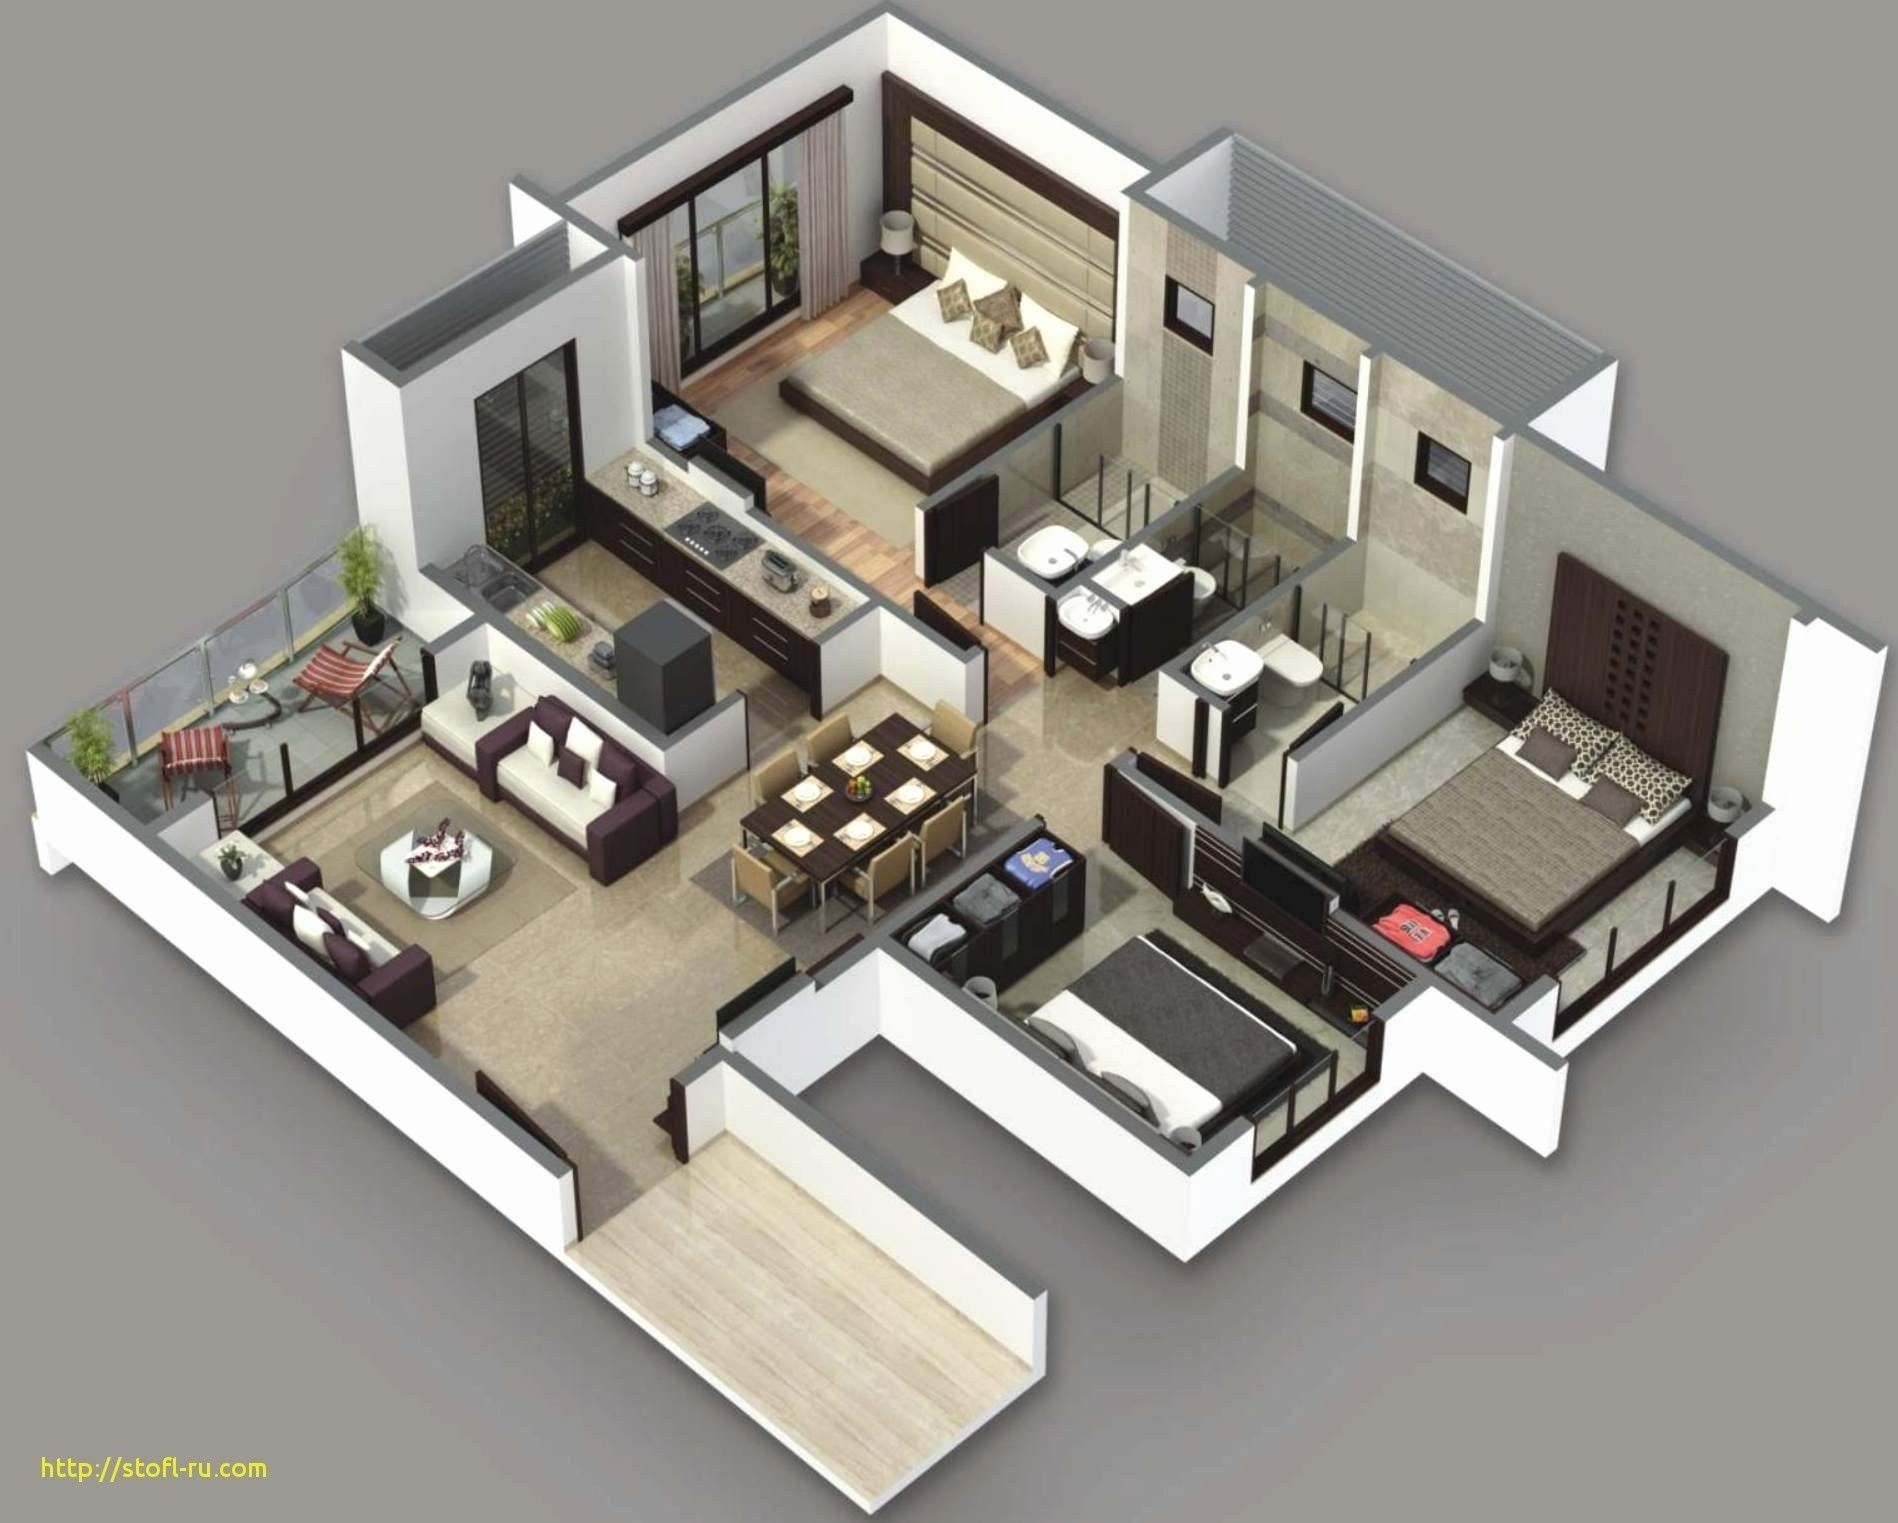 28 Top House Design Ideas And Plans Simple House Plans 3d House Plans House Floor Plans